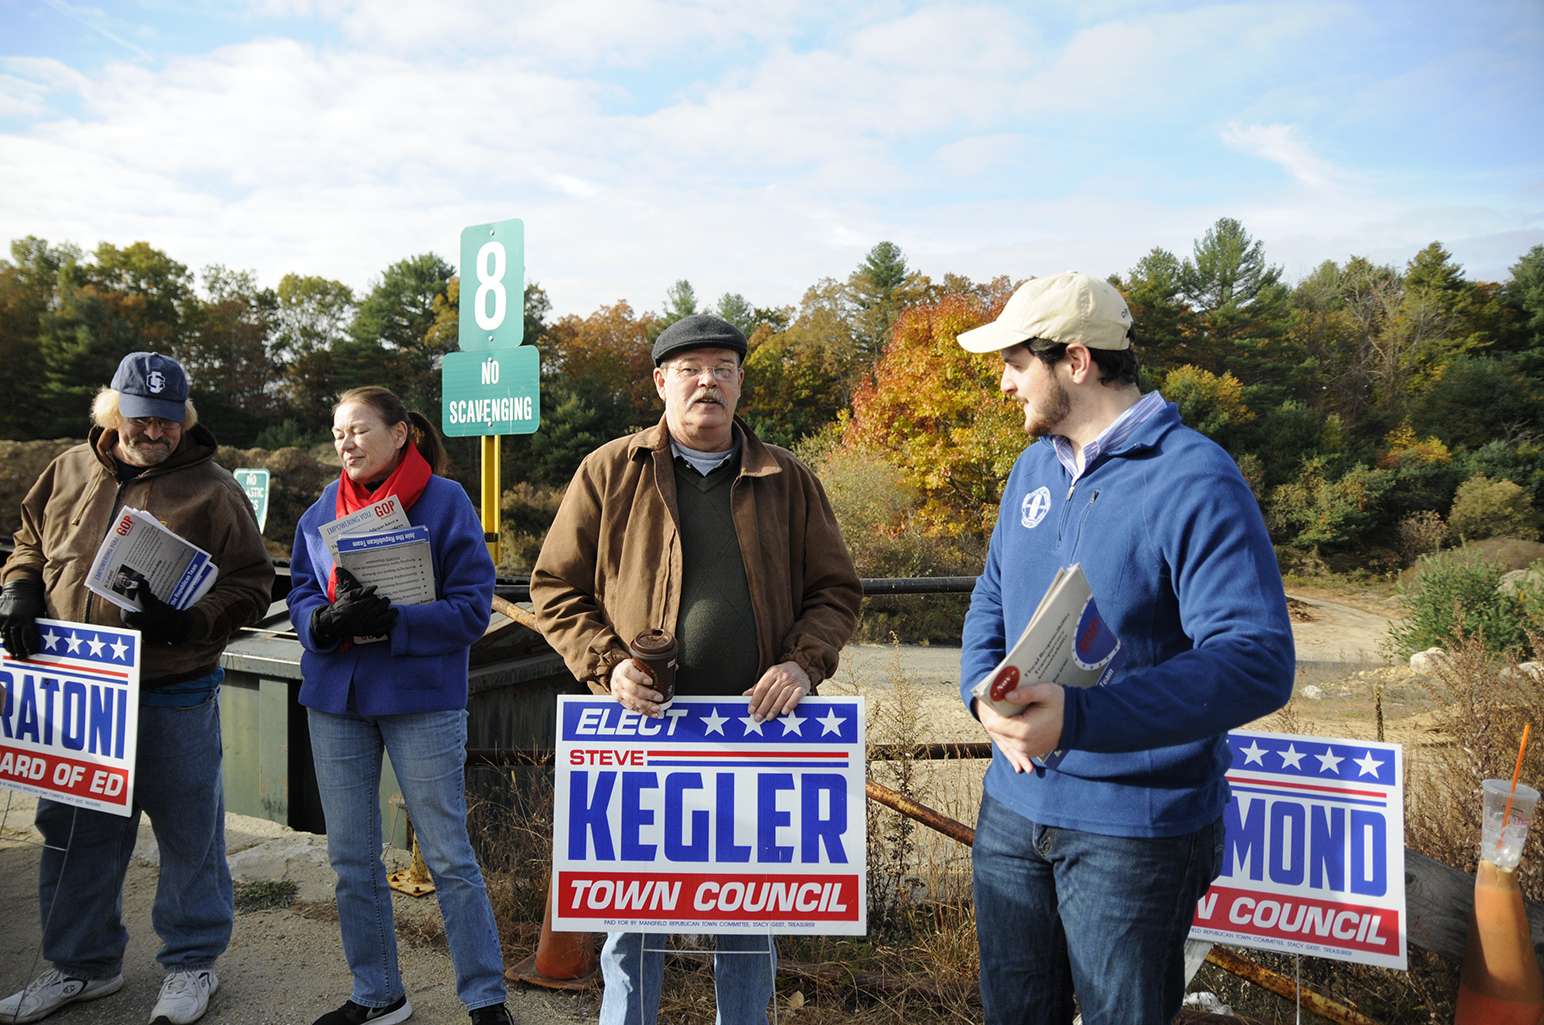 The Mansfield Republicans ran three candidates for the three minority seats on the Mansfield Town Council. Republican town council candidates pictured right to left at the Mansfield Transfer Station: Mark Sargent (new entry), Steve Kegler (incumbent) and Virginia Raymond (incumbent). (Amar Batra/The Daily Campus)